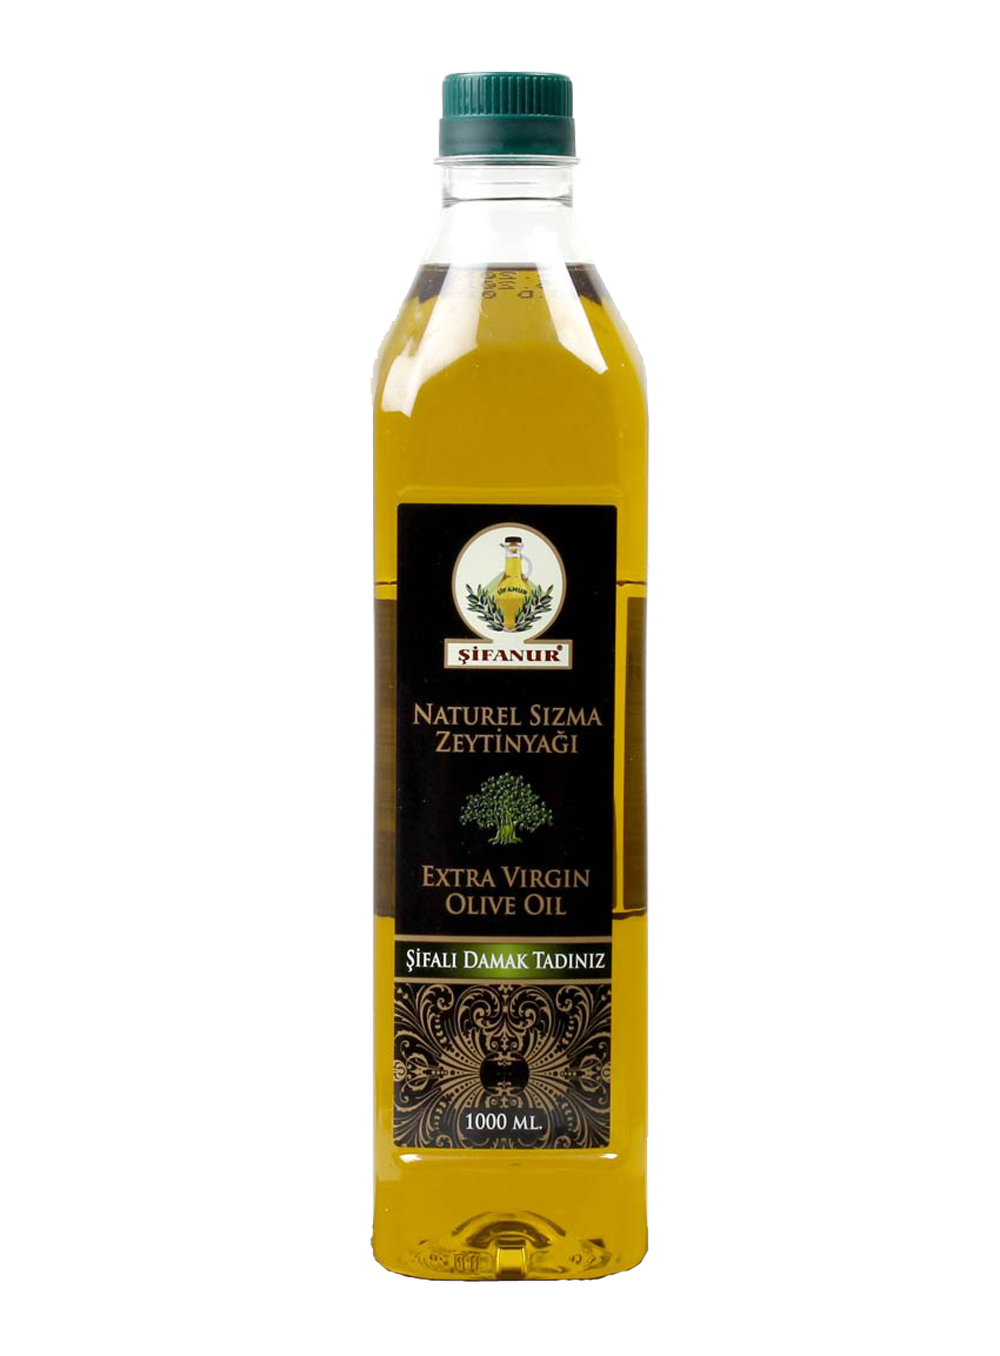 Sifanur Extra Virgin Olive Oil - 1 L Pet Image